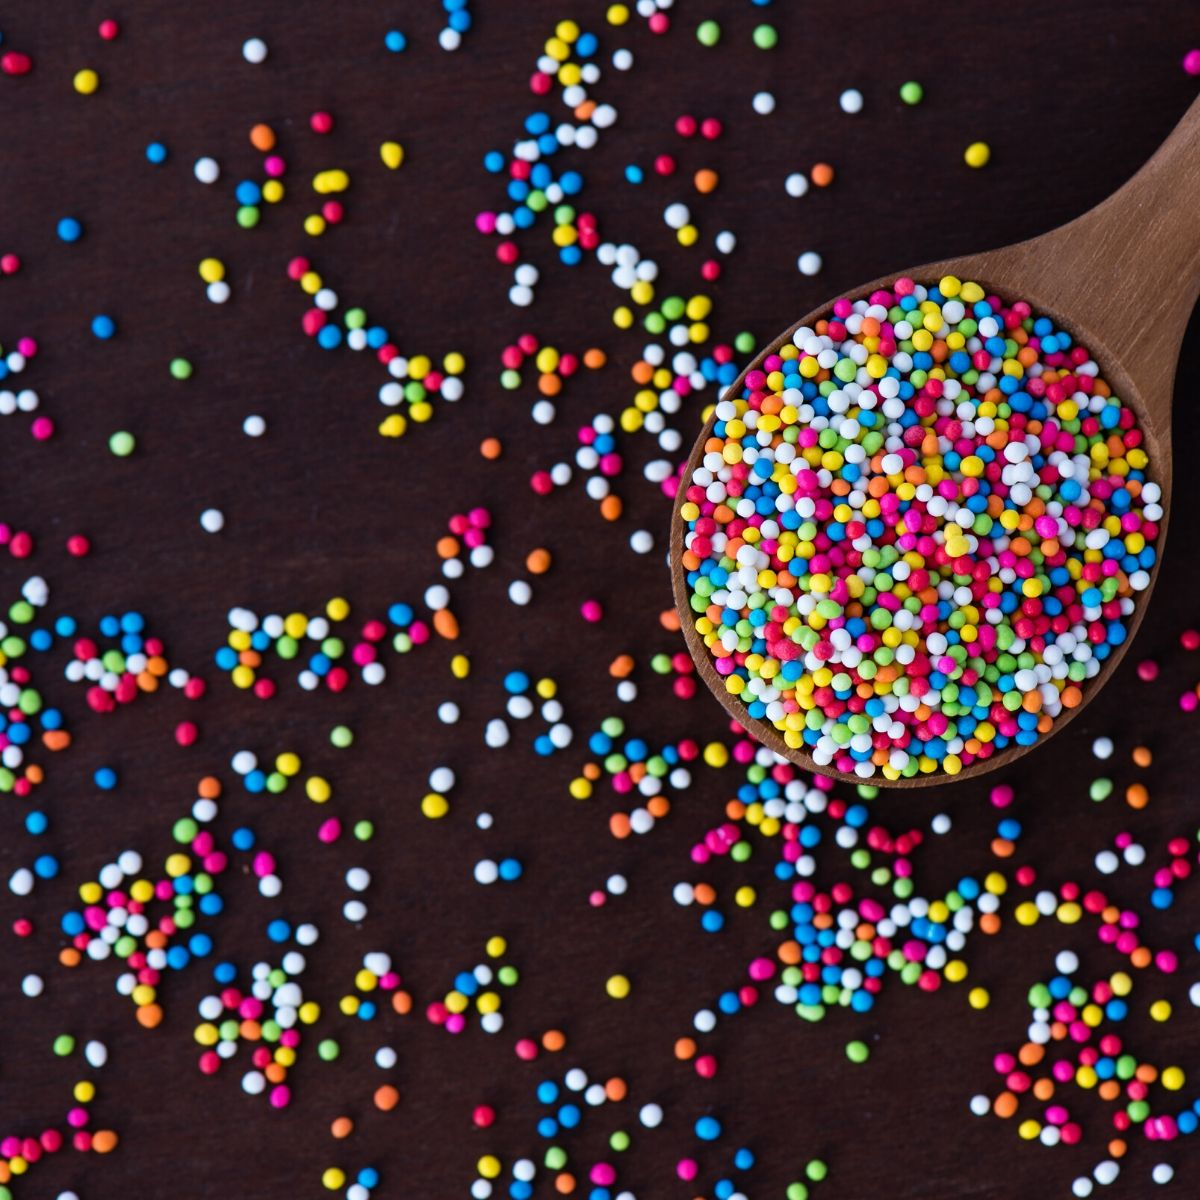 Do you know which sprinkles are gluten free? Find out and get ready for lots of baking! fearlessdining.com/gluten-free-sp… #glutenfree #glutenfreebaking